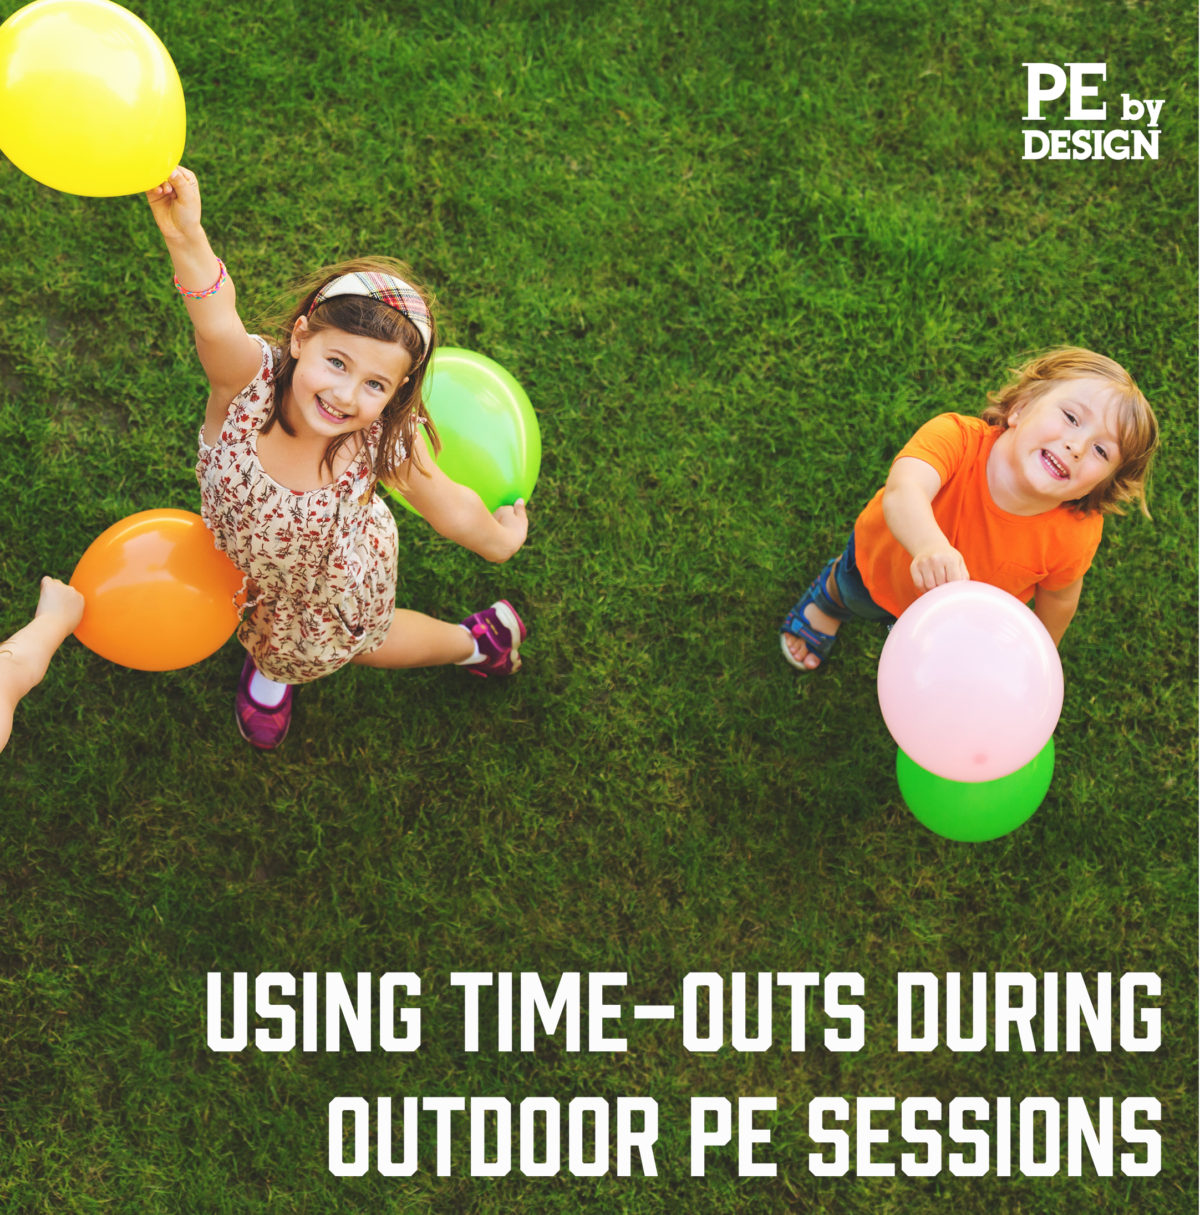 Using Time-Outs During Outdoor PE Sessions